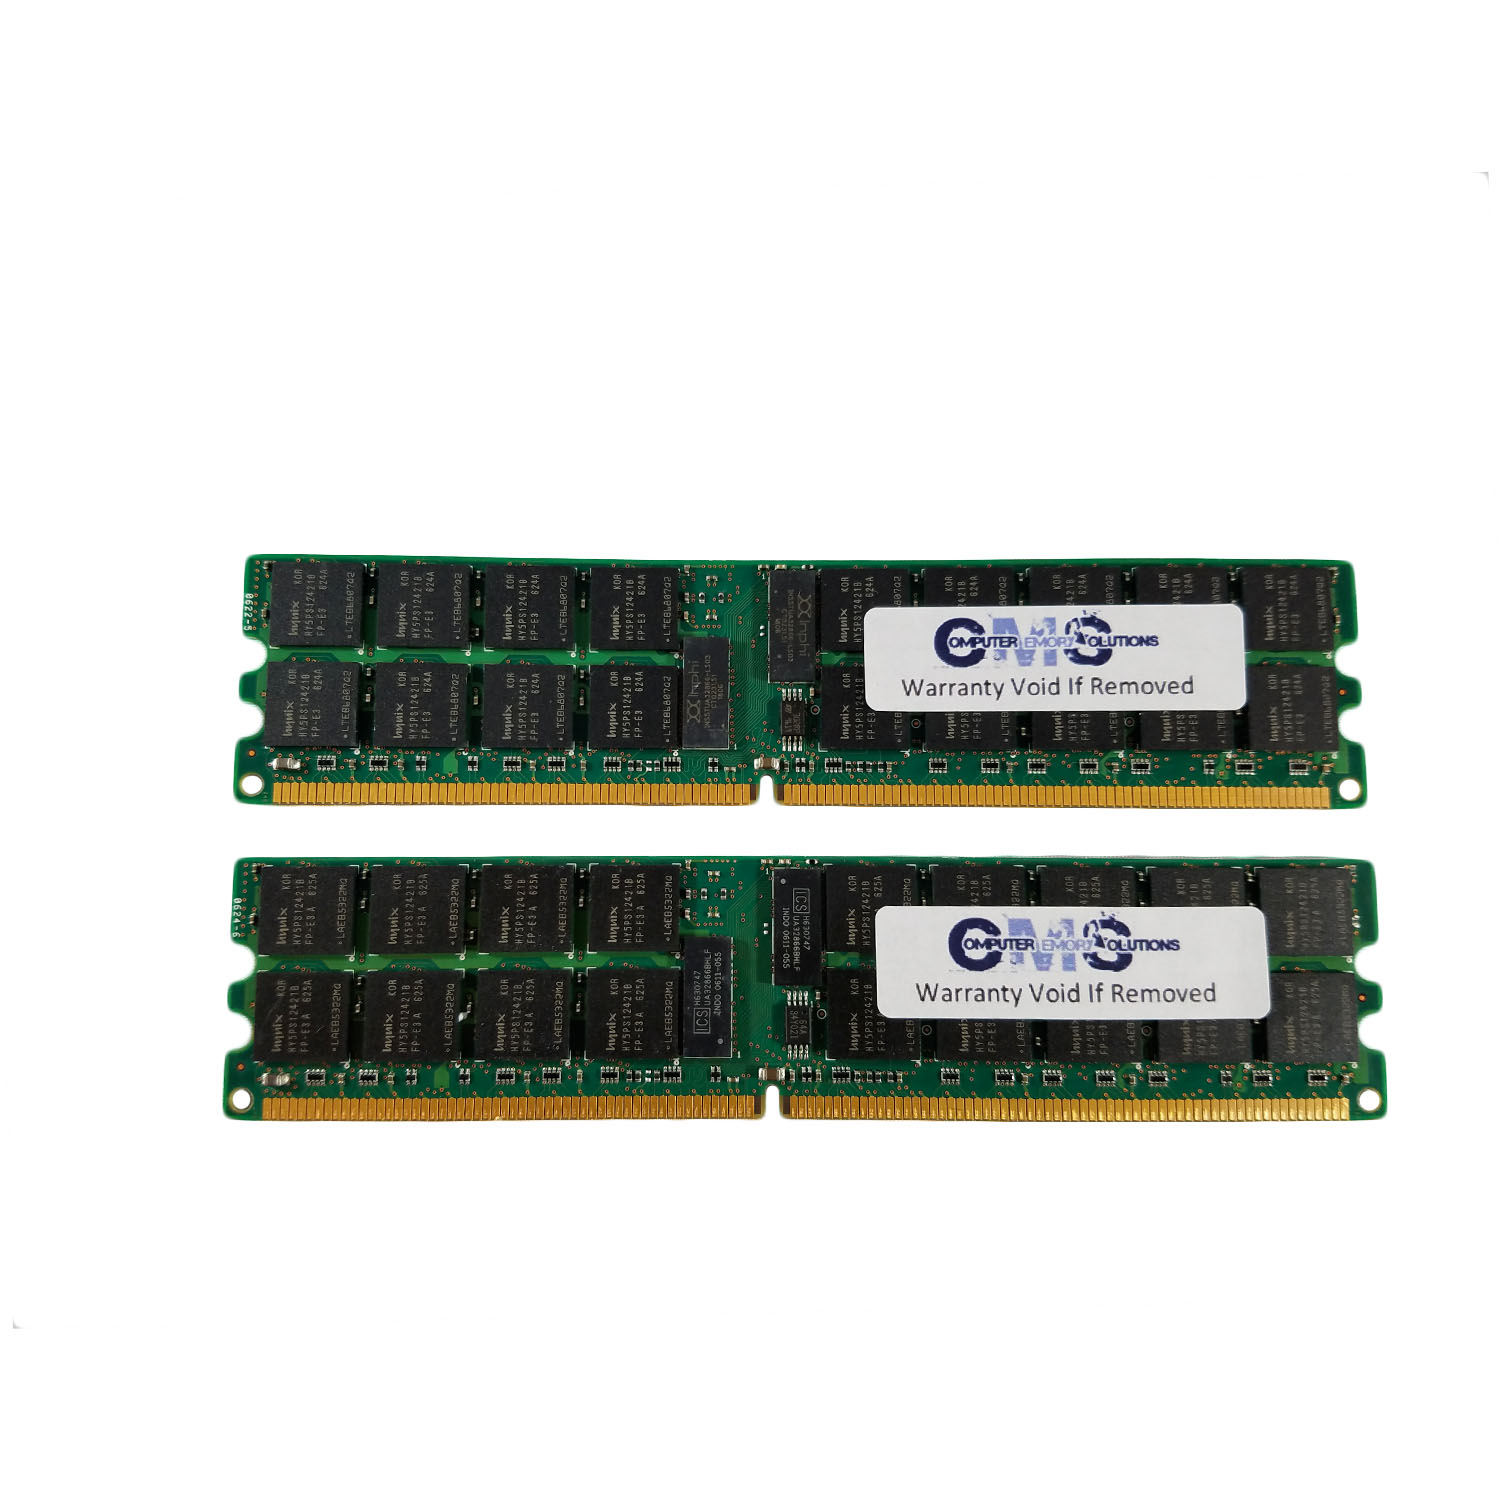 Supermicro X6DH8-G2 / X6DHE-G2 / X6DH8-G2 / X6DHE-G2 Drivers for PC